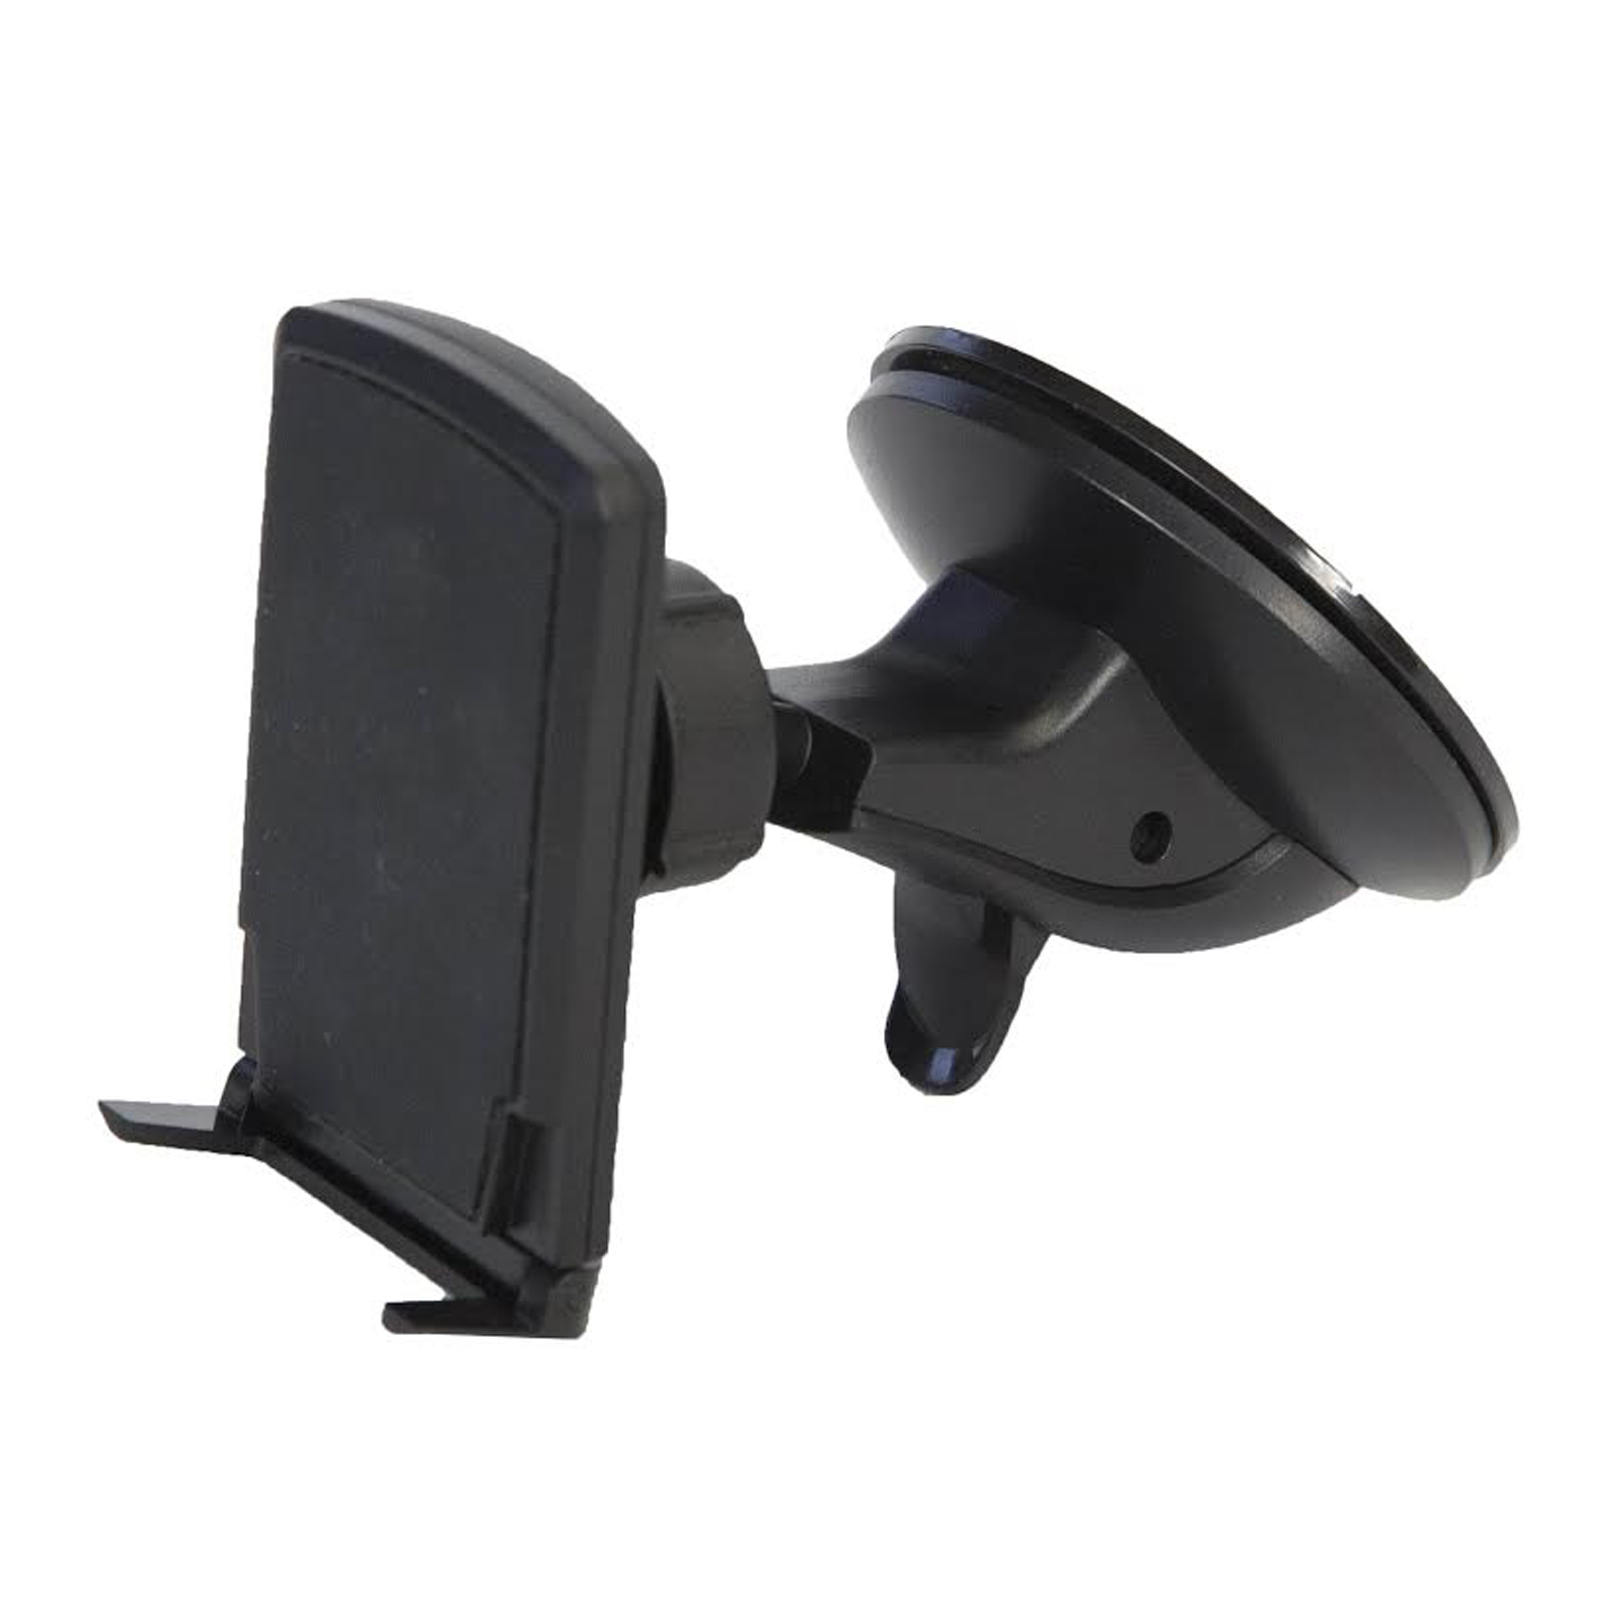 Heininger CommuteMate Magnetic Suction Mount iPhone Smartphone Holder Device